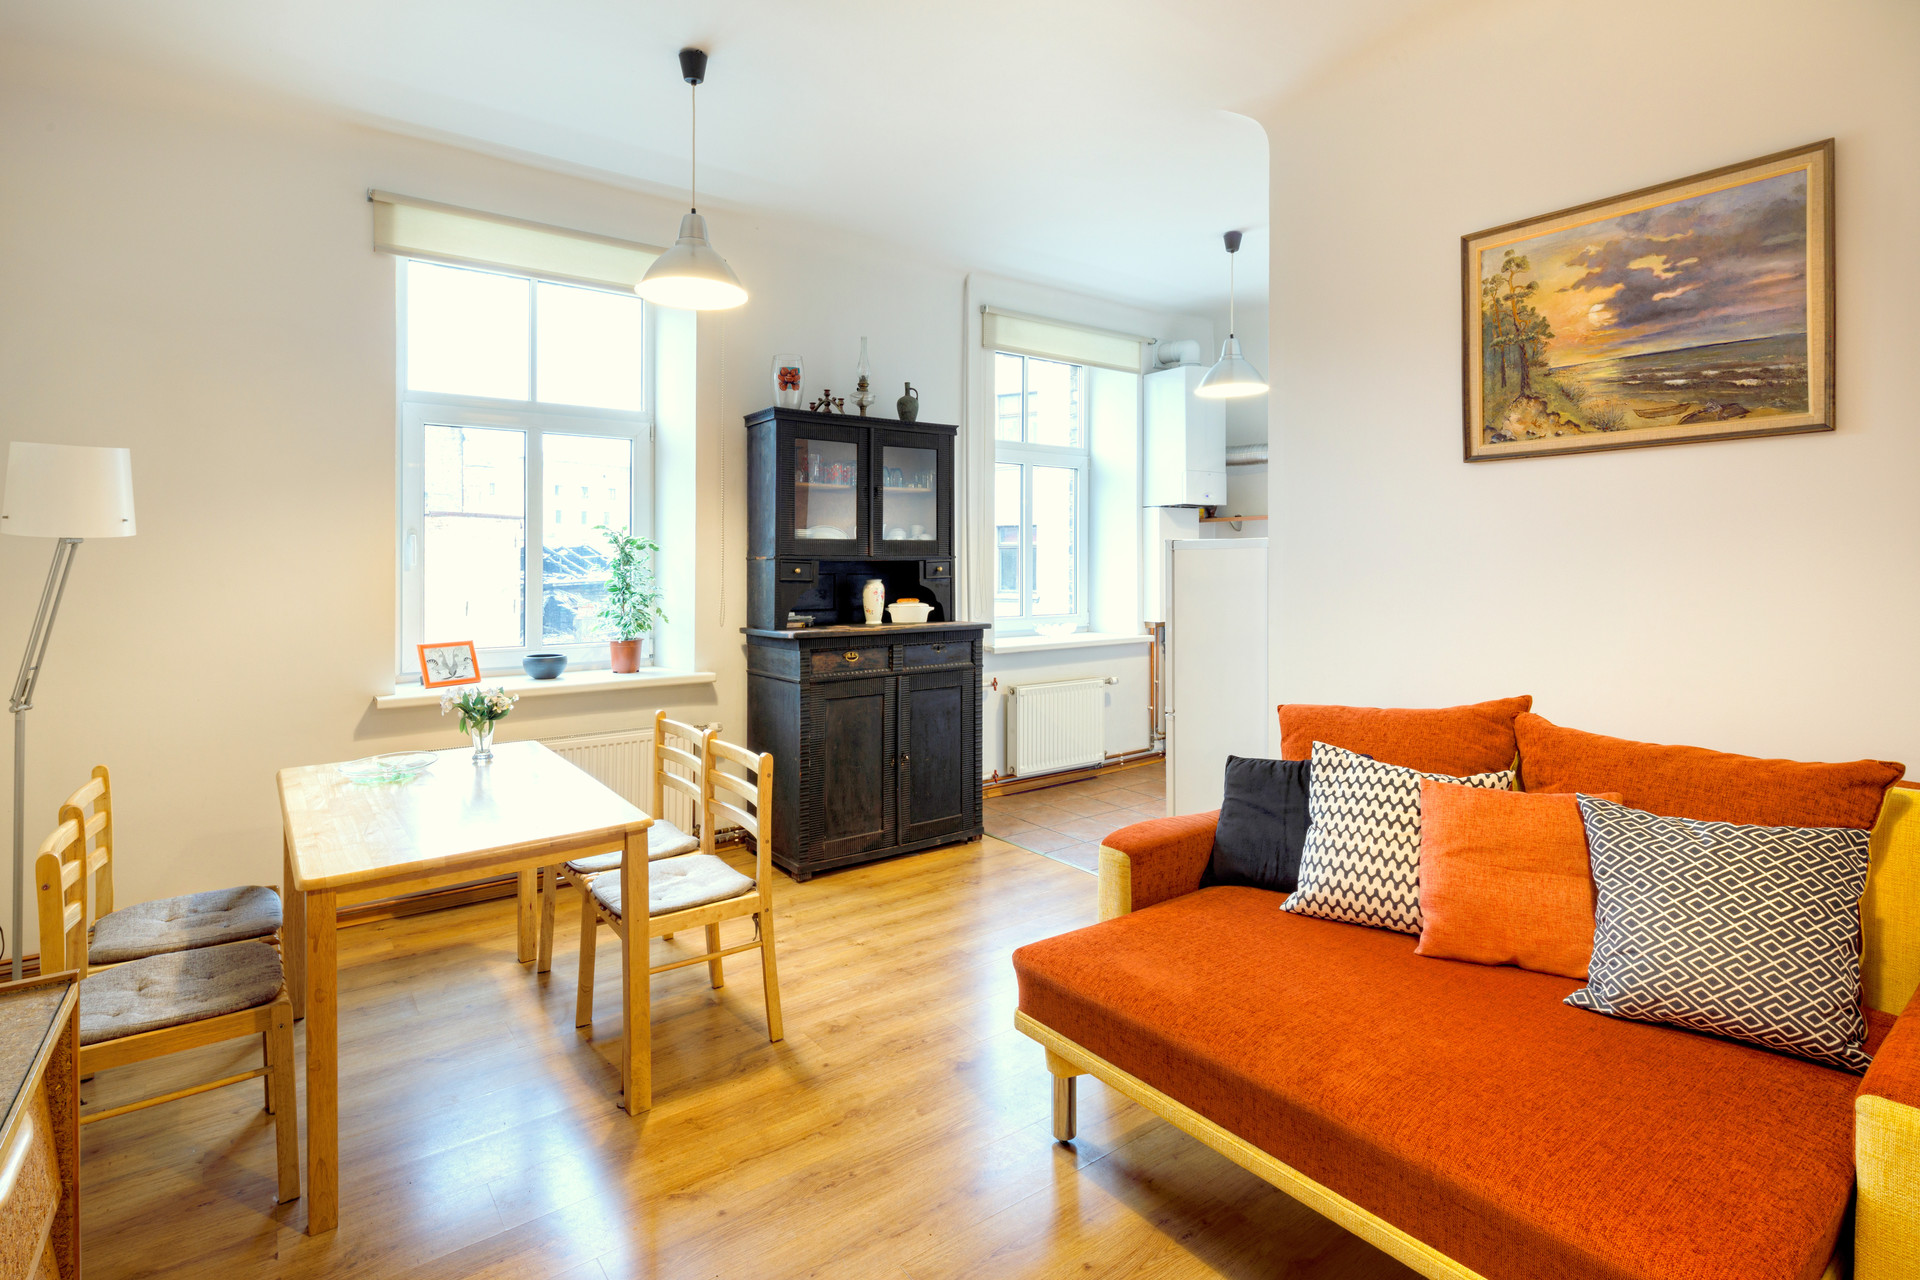 Bright 1-bedroom apartment for rent in Riga center | Flat ...